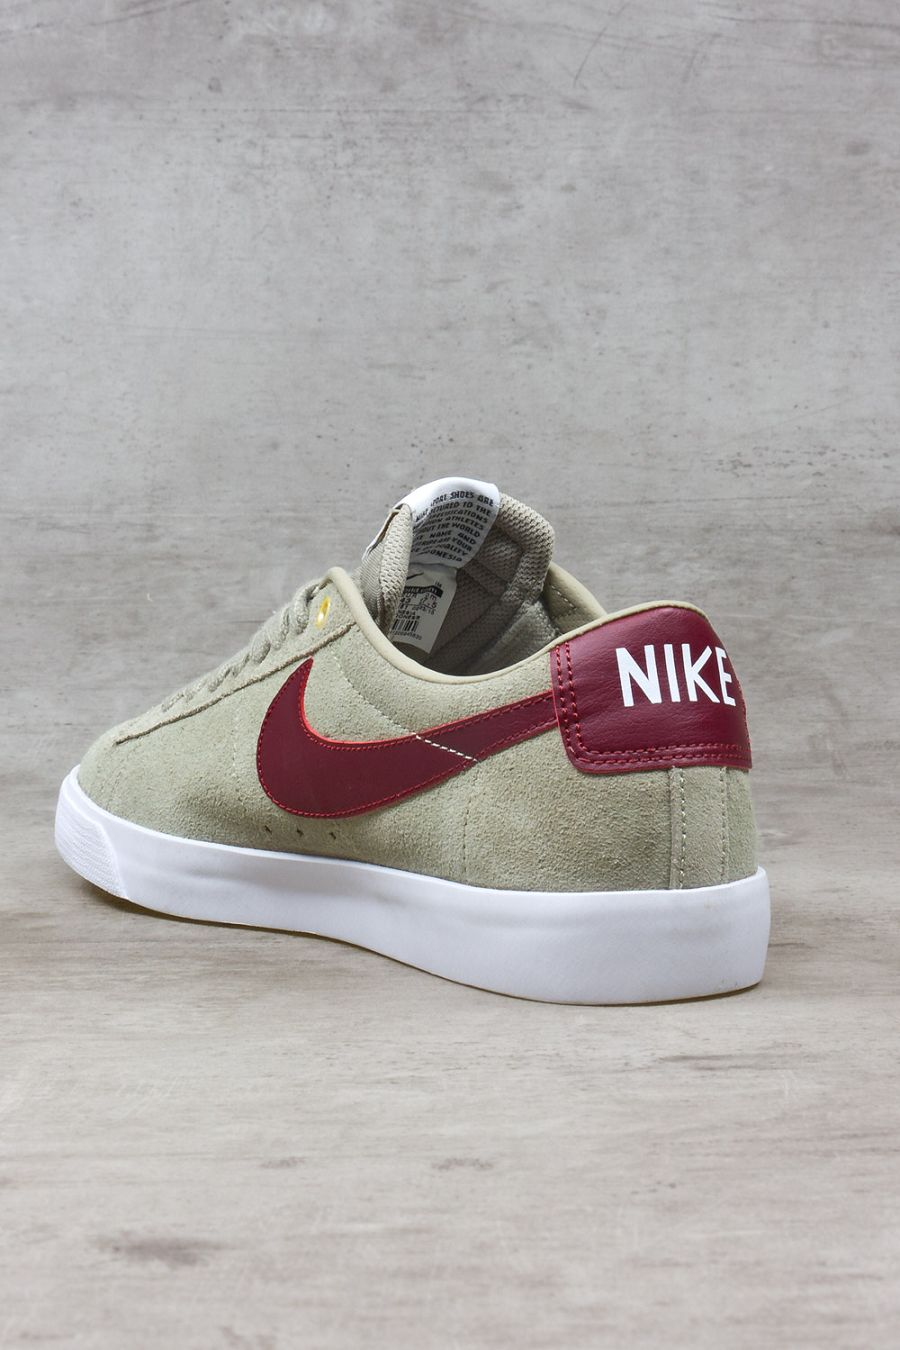 ab34bae819b3 k-51963 s2 · k-51963 s3 · k-51963 s4 · k-IMG 9533. Via Blowout ·  k-IMG 9527. Nike SB Blazer Low GT – Bamboo  Team Red-White